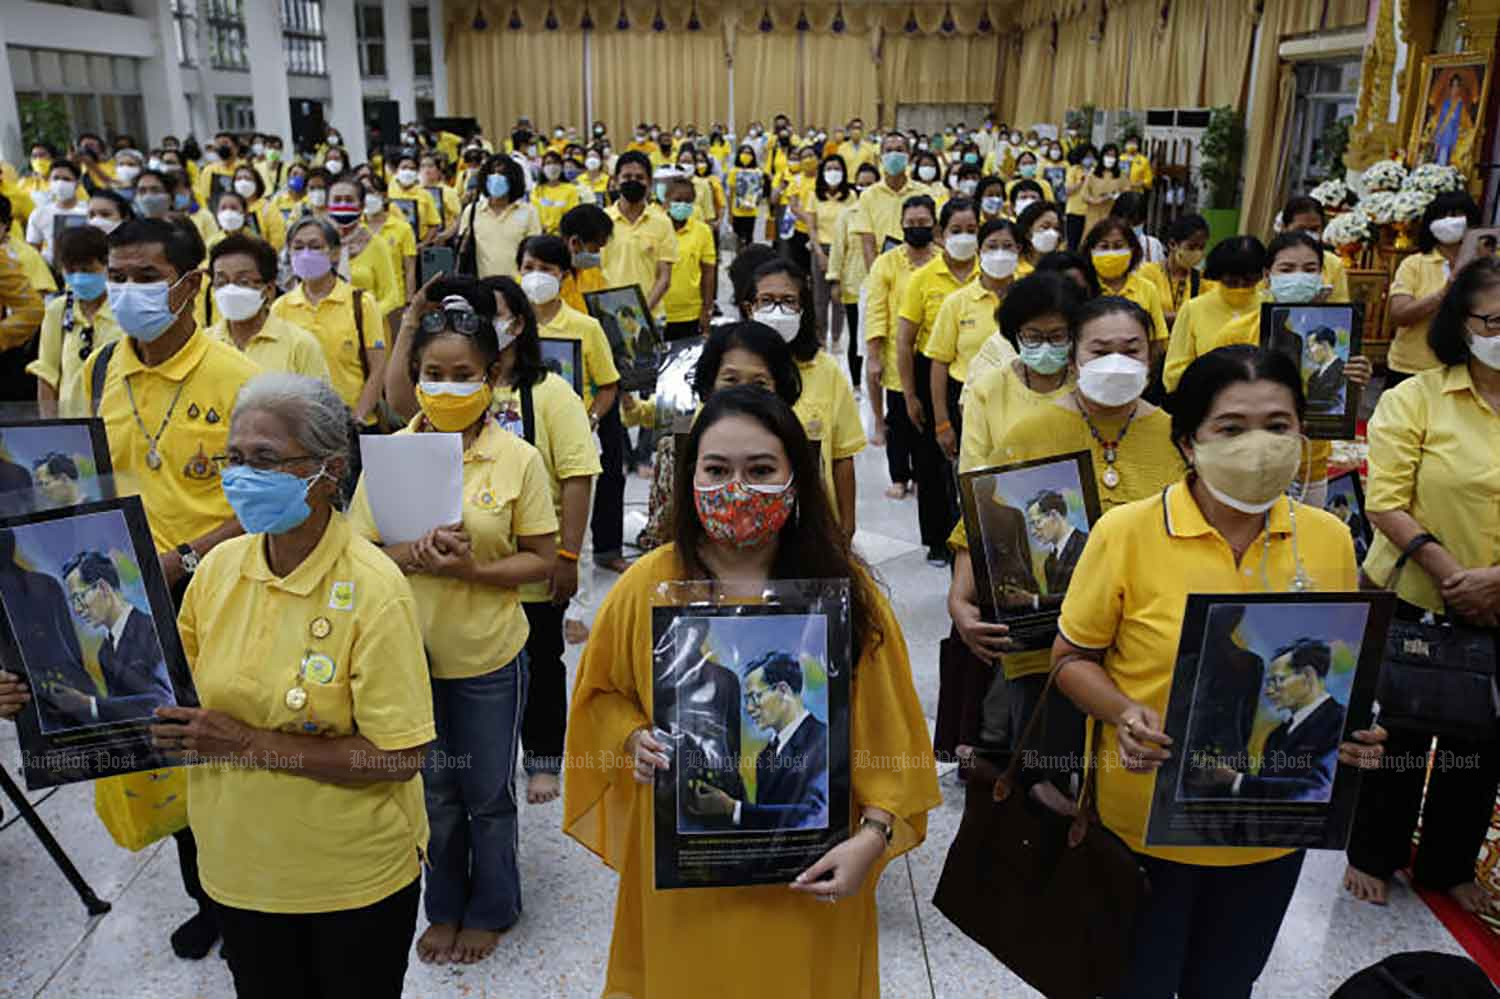 Yellow-clad people attend a ceremony to remember His Majesty King Bhumibol The Great at Siriraj Hospital in Bangkok on Wednesday.(Photo: Wichan Charoenkiatpakul)